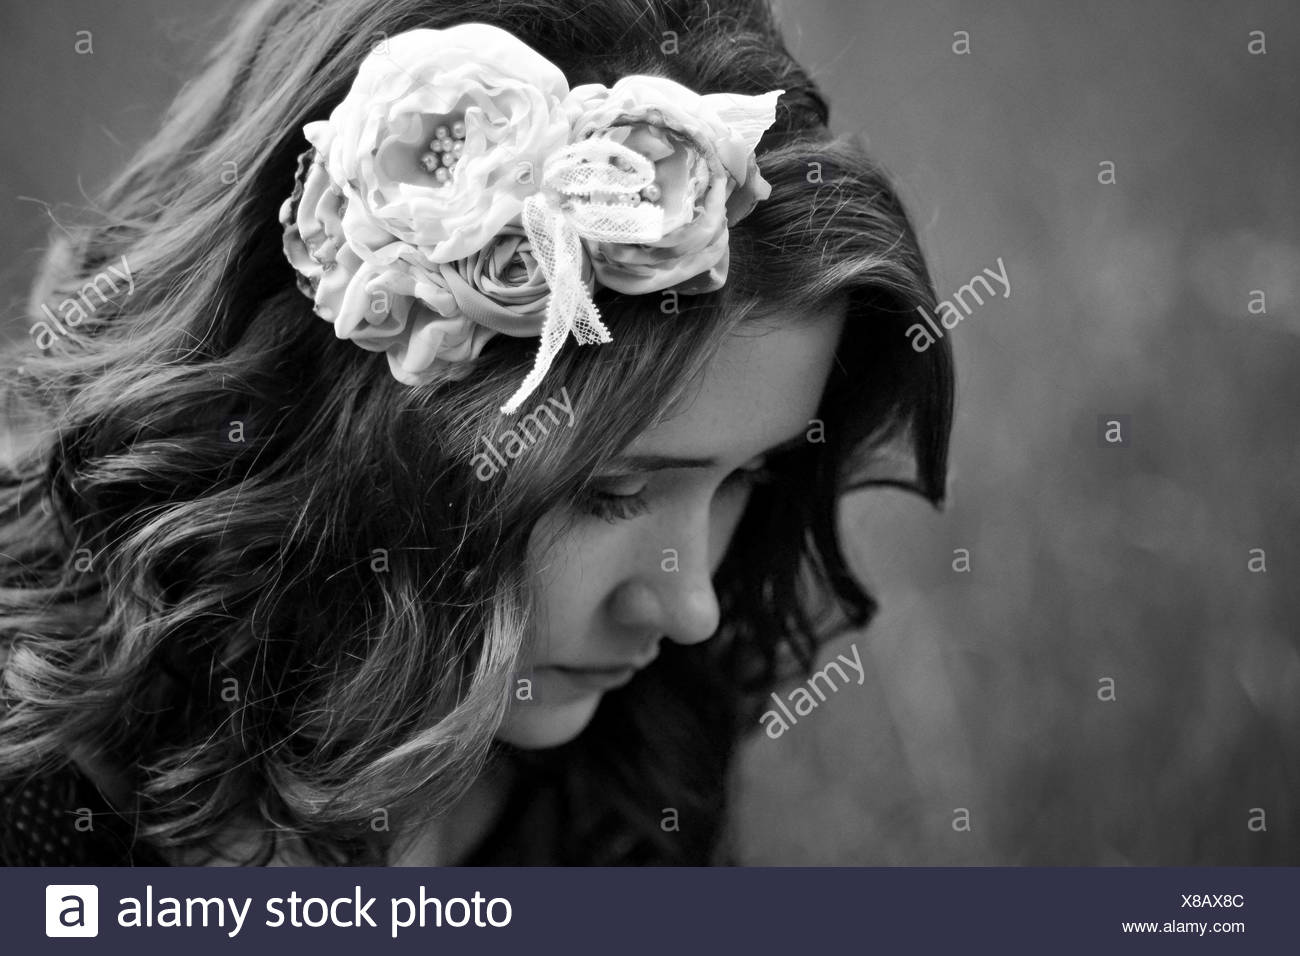 Beautiful Sad Pretty Girl Has Thought Of Problems Meaning Of Life